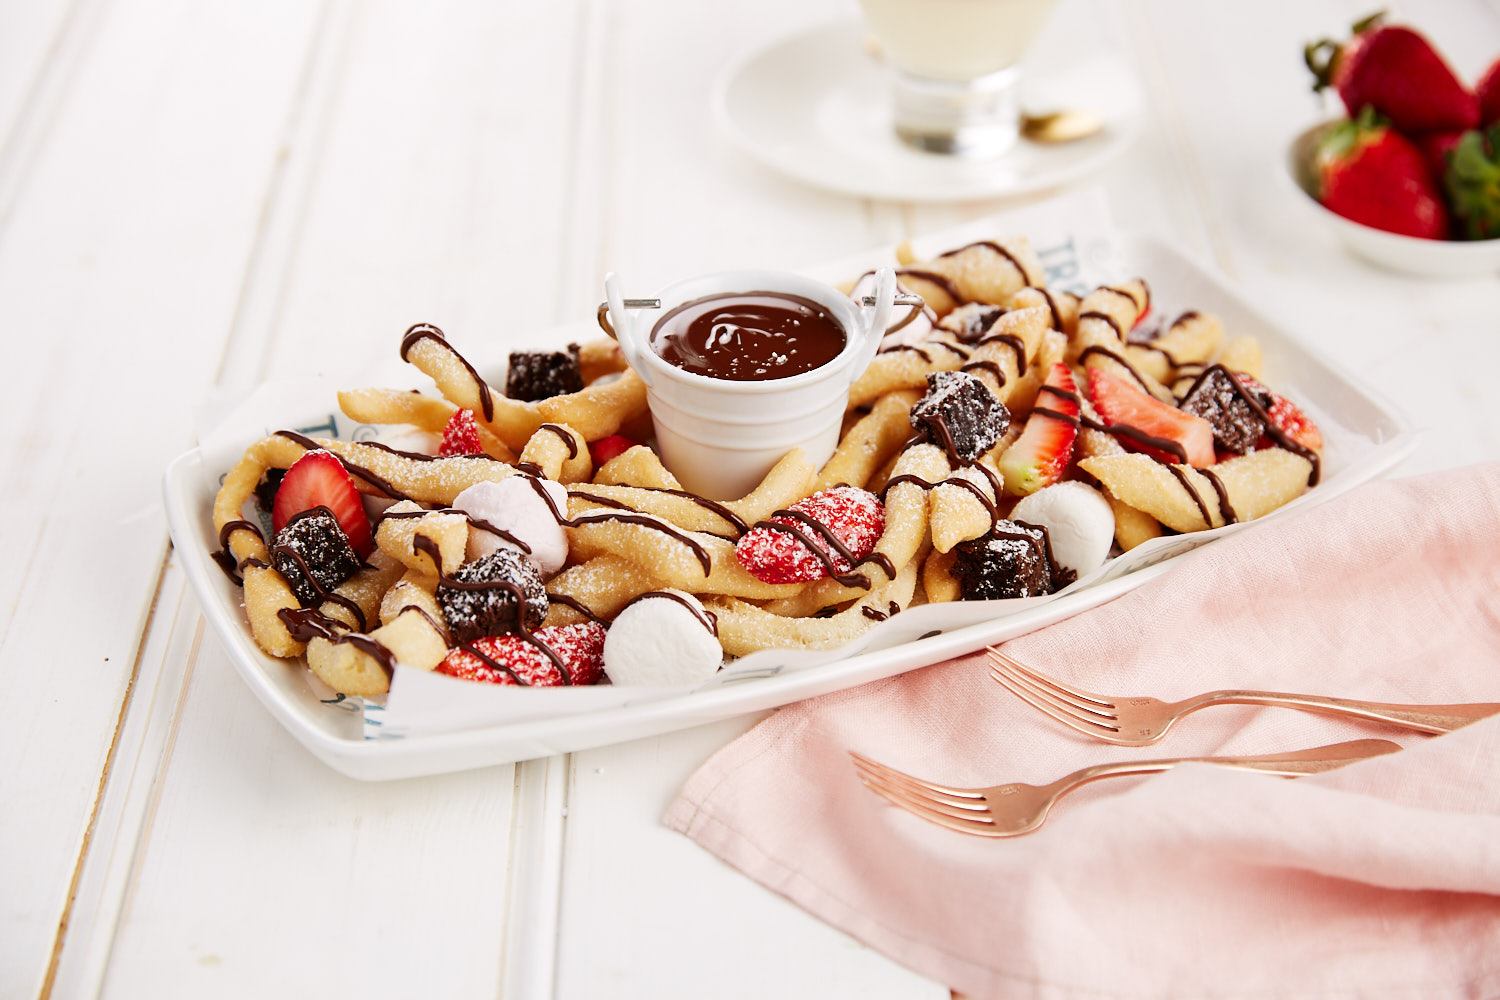 Strips of warm crispy fried dough, dusted in icing sugar, with strawberries, marshmallows and brownie pieces, served with rich chocolate sauce for dipping